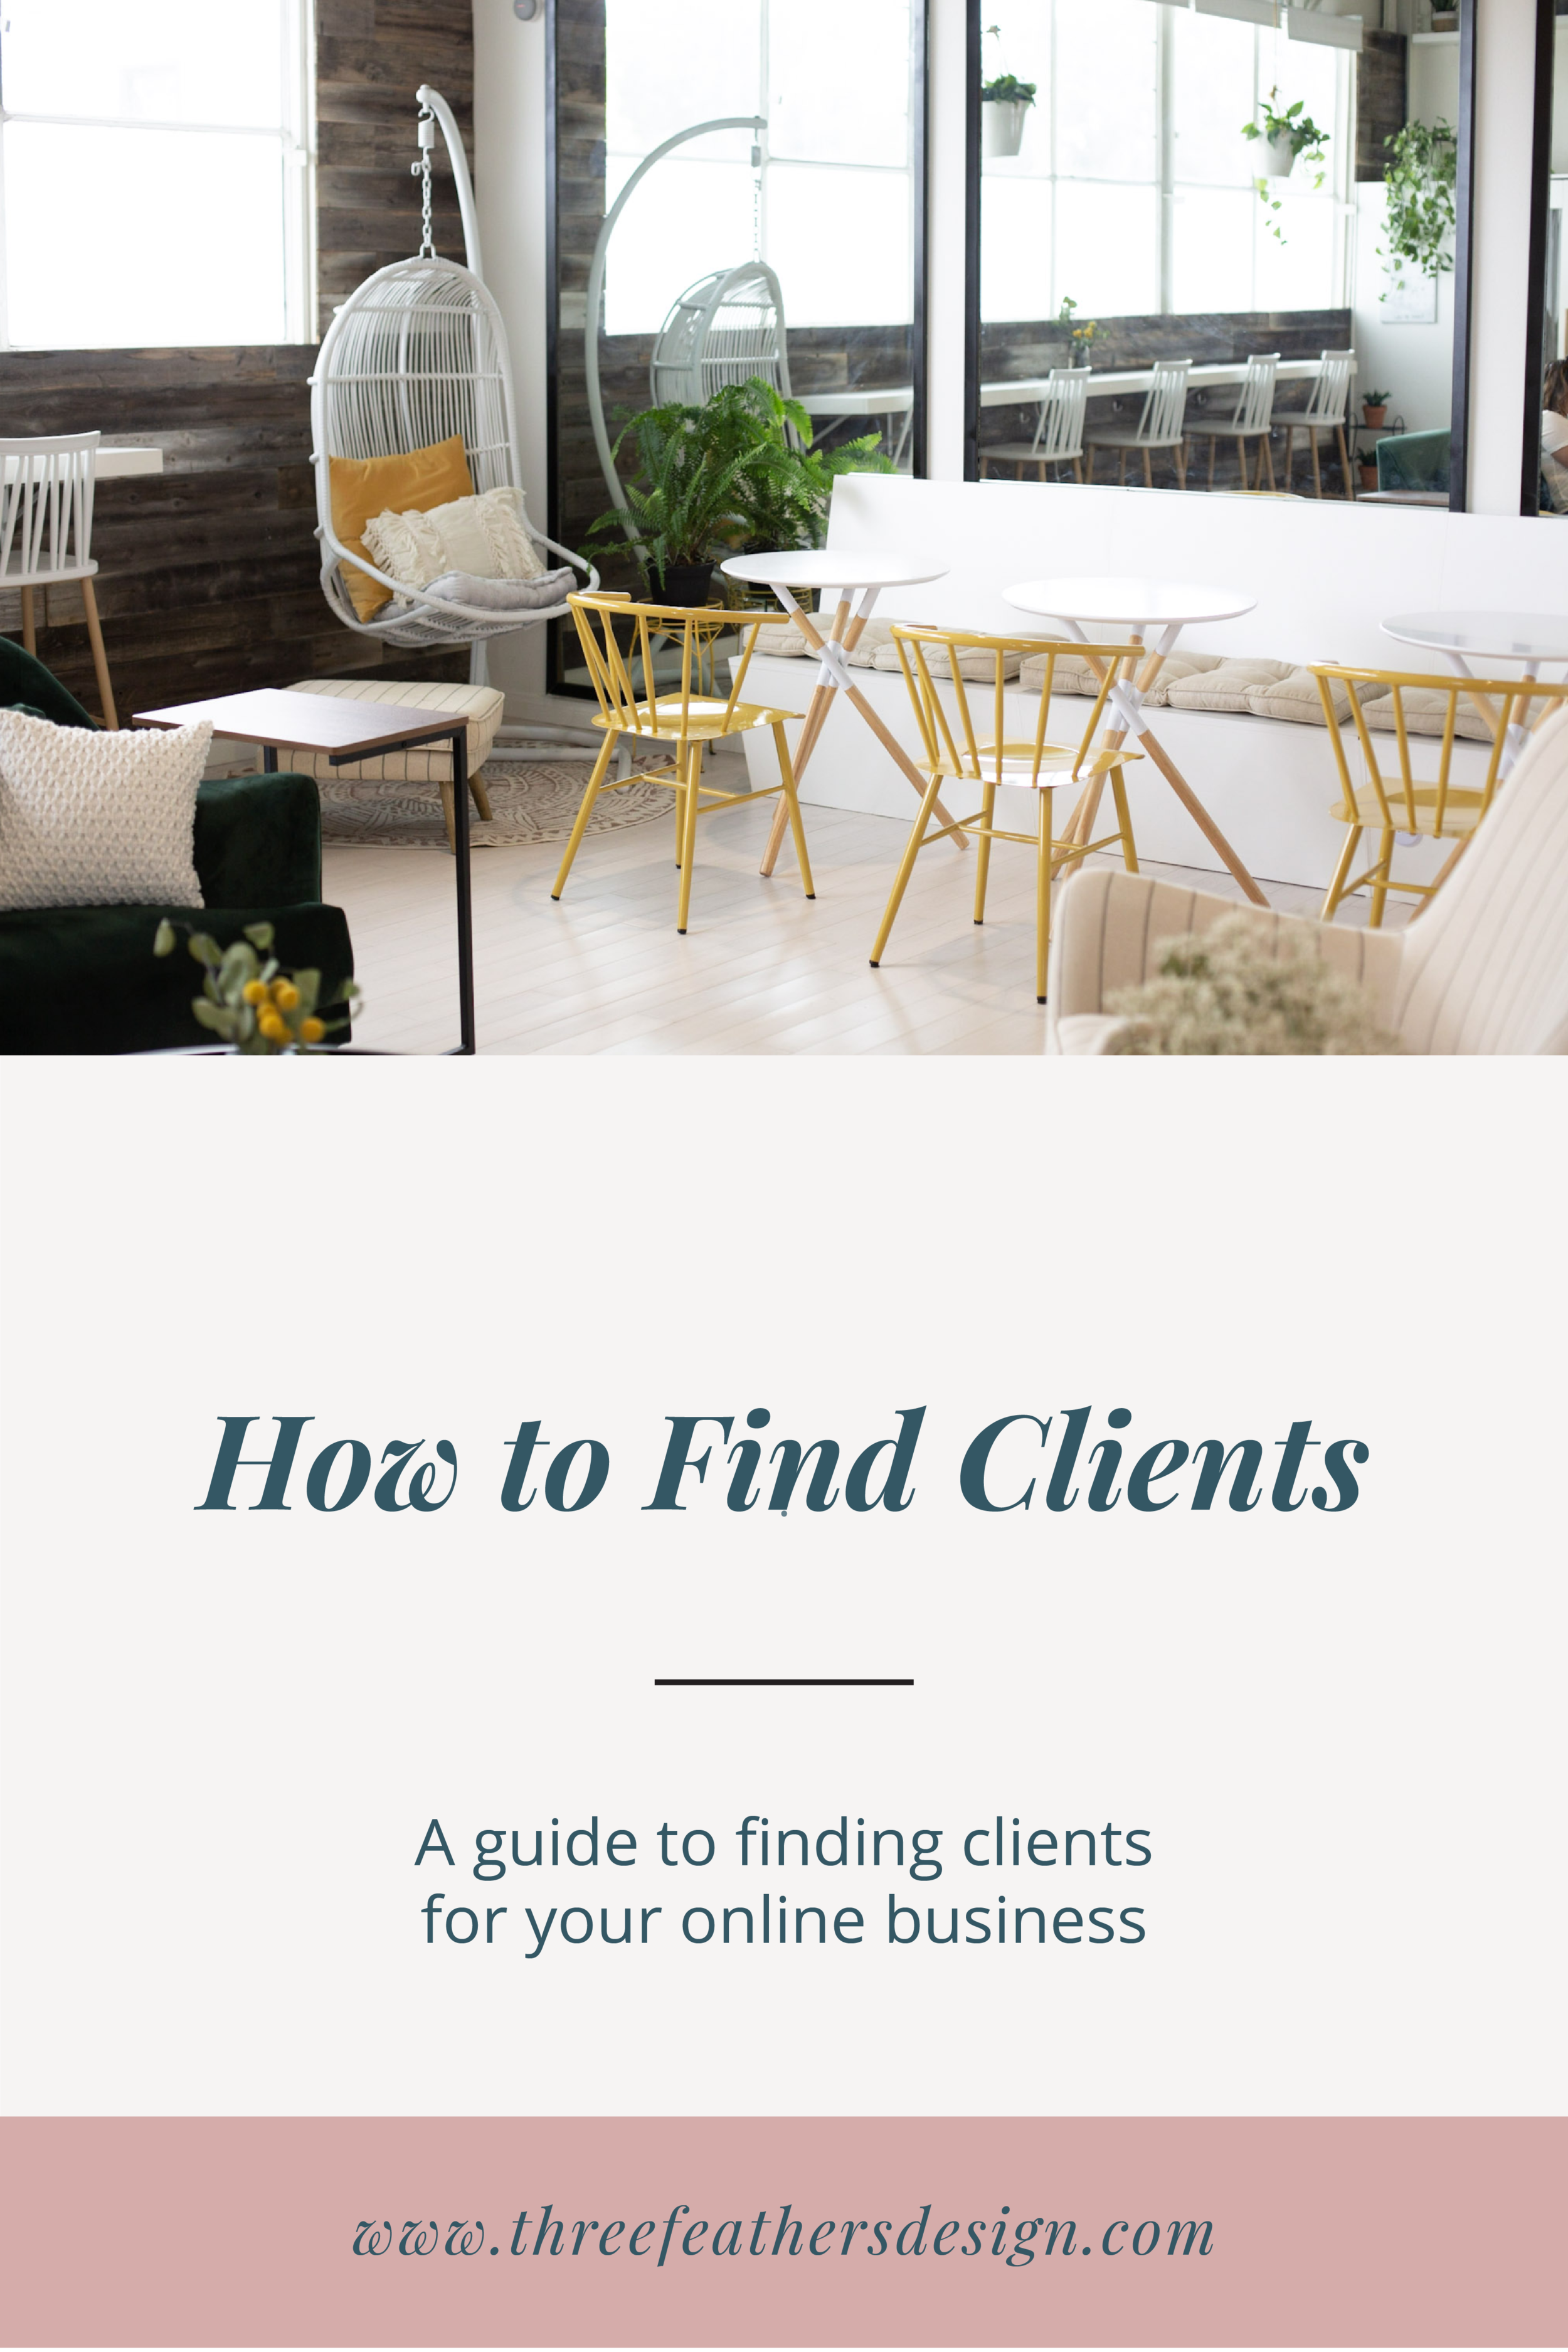 """Hands down, the most frequently asked question I get is """"How do you find clients?"""" I wanted to share some of the ways I have found business when I was just starting out and some of the strategies that are still effective for me today. Use these tips to implement in your own business, but I encourage you to adapt and adjust as needed for your industry and needs as well!"""